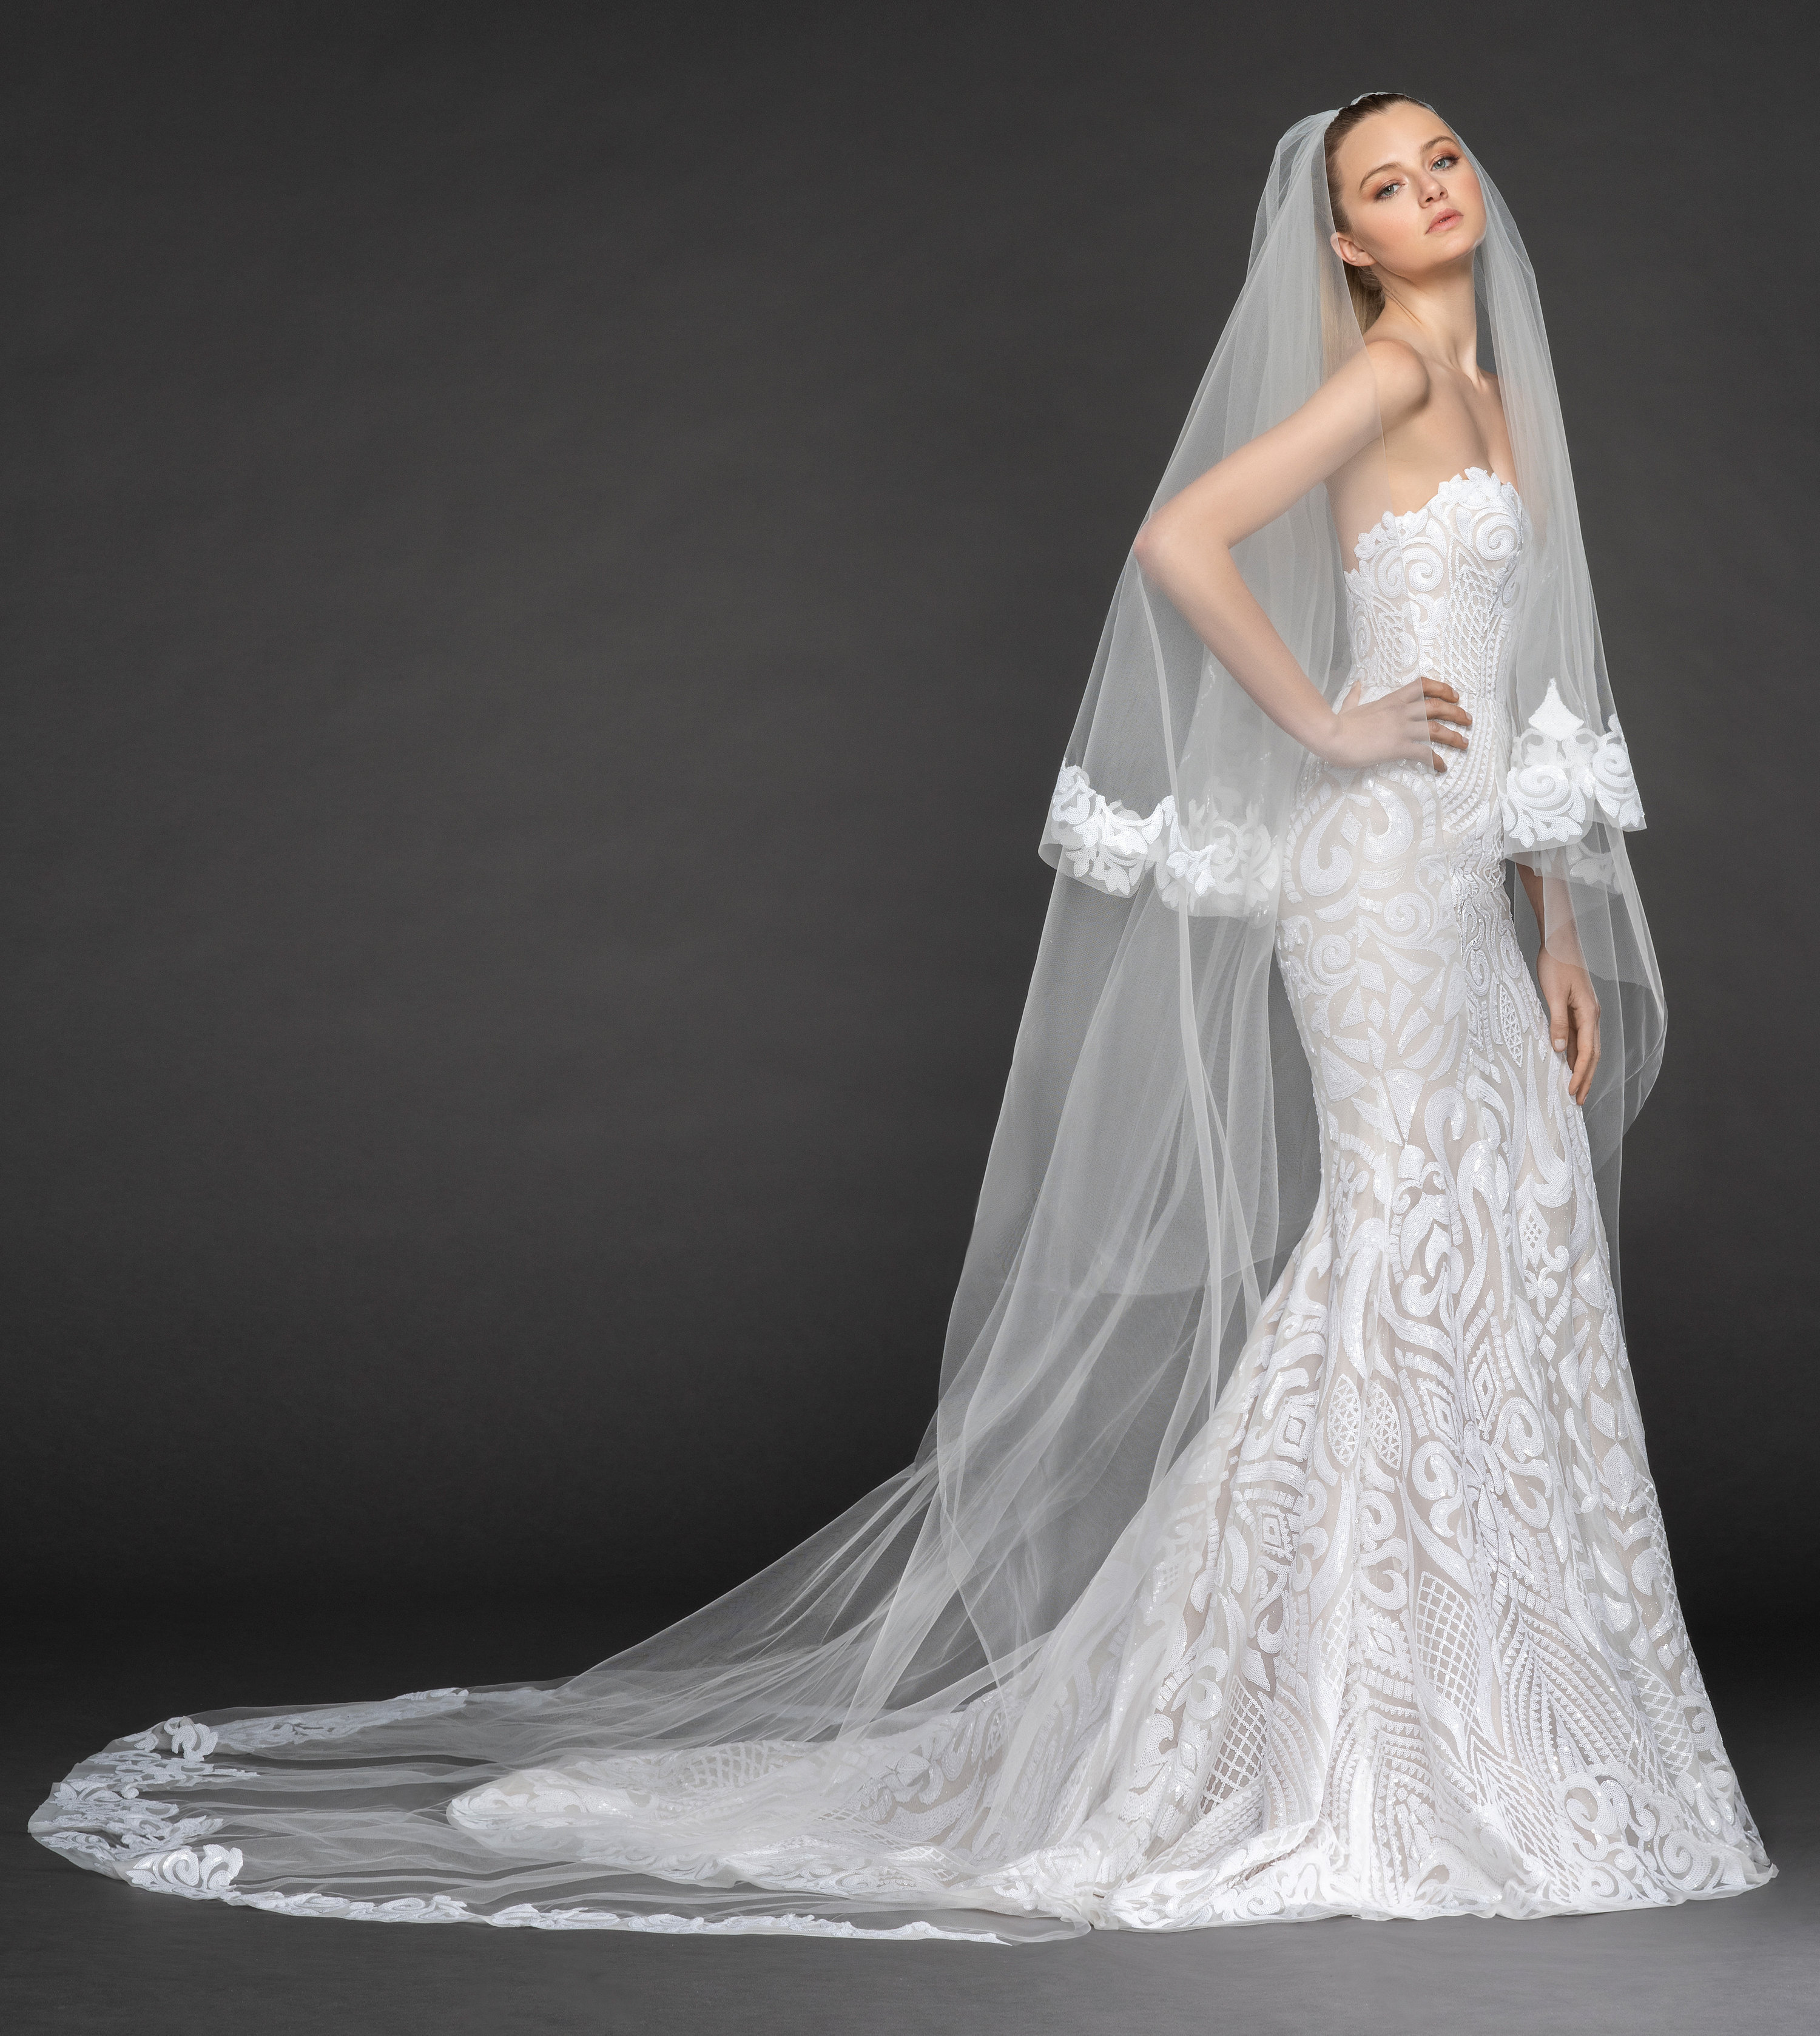 2c3de5519ed Bridal Gowns and Wedding Dresses by JLM Couture - Style 1858 Safyr